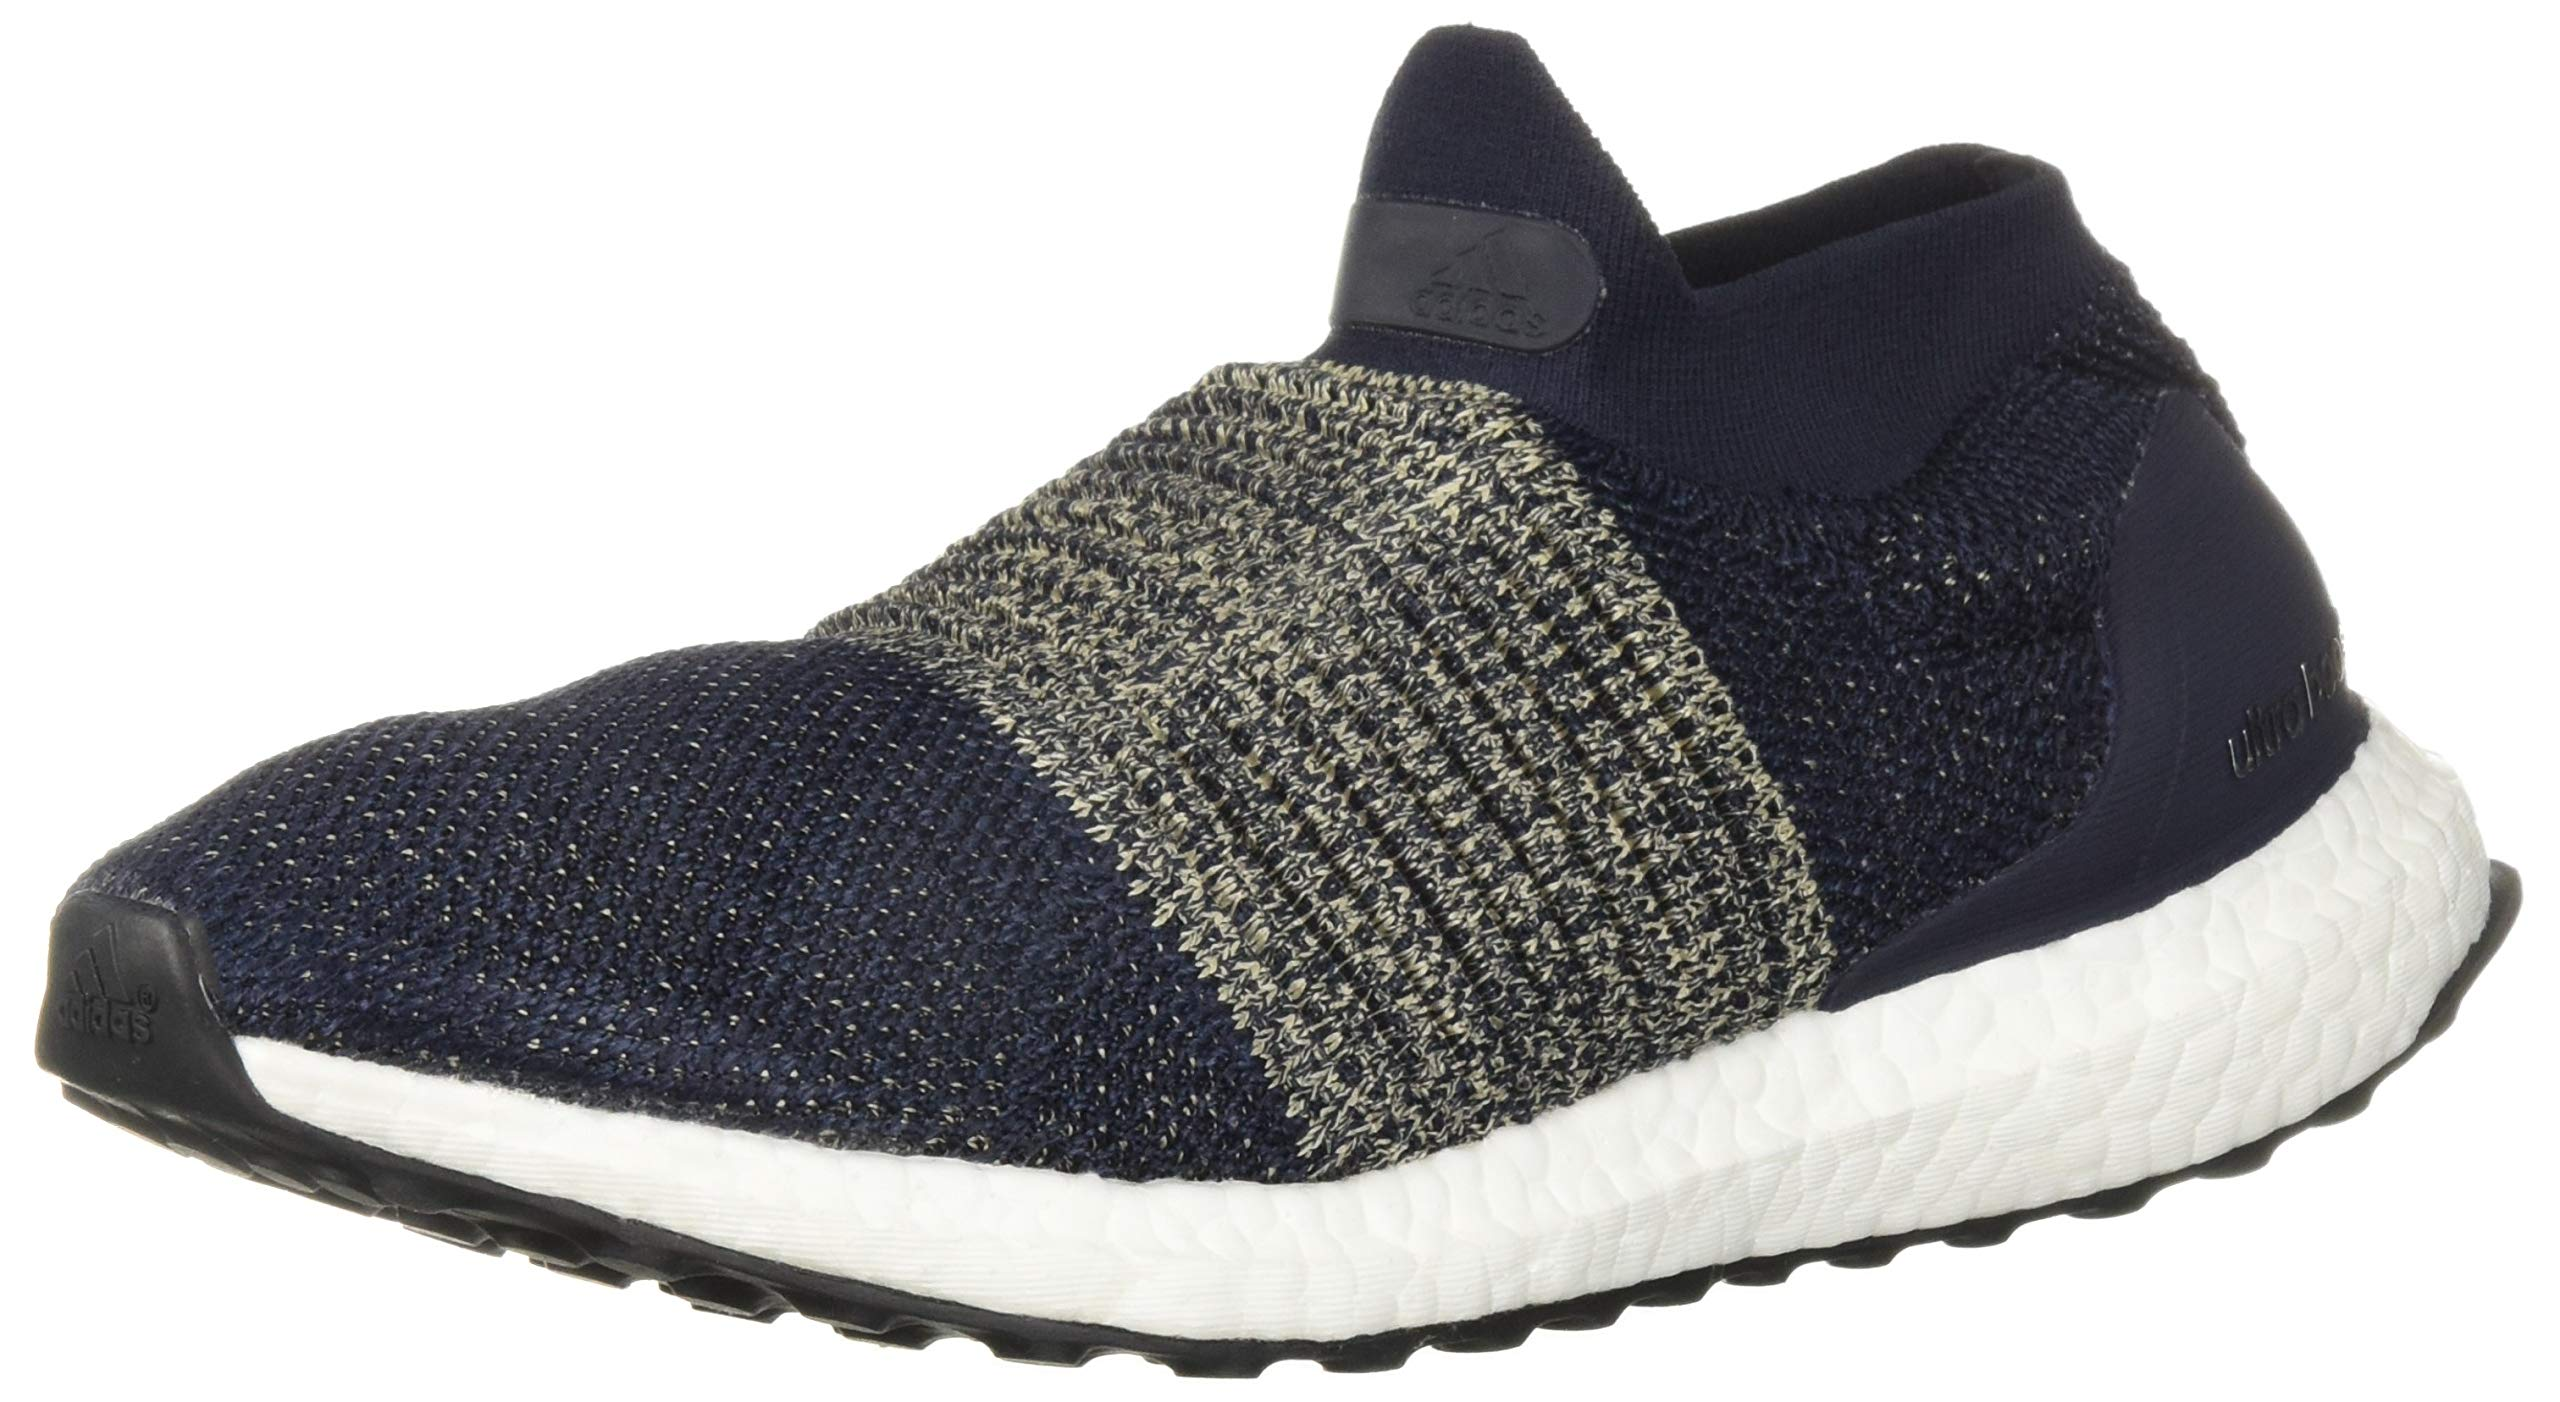 f49ffeee1a0 Galleon - Adidas Men s Ultraboost Laceless